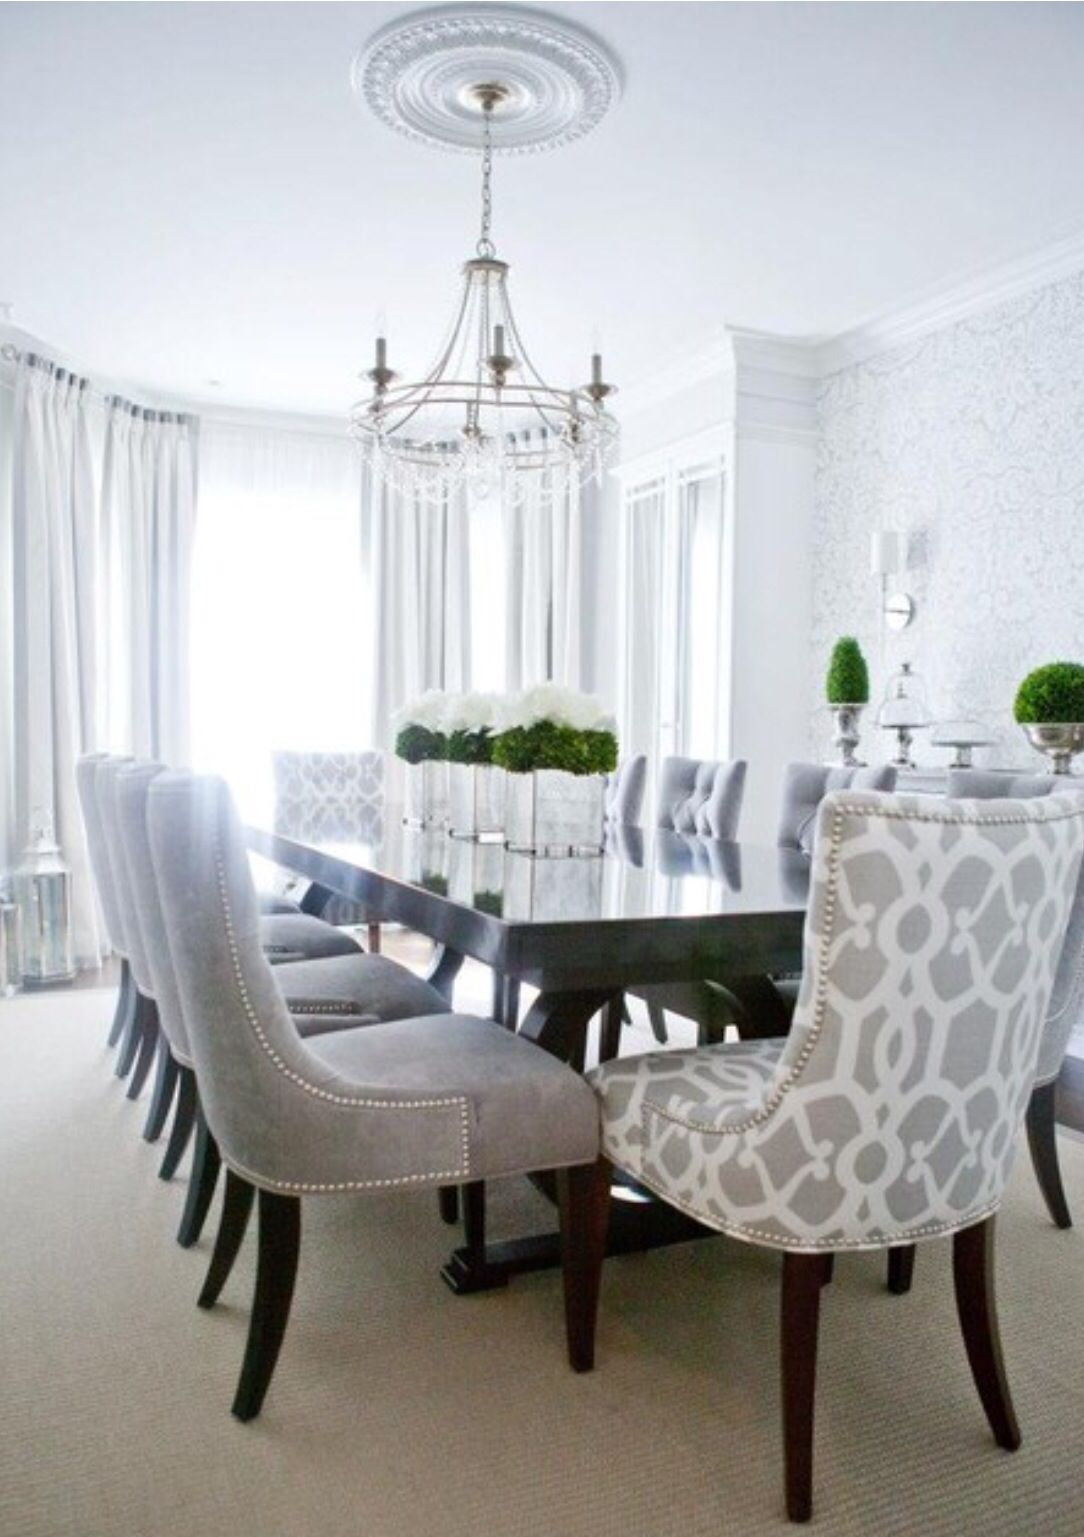 Grey dining | Dining Room | Dining room chairs, Elegant ...